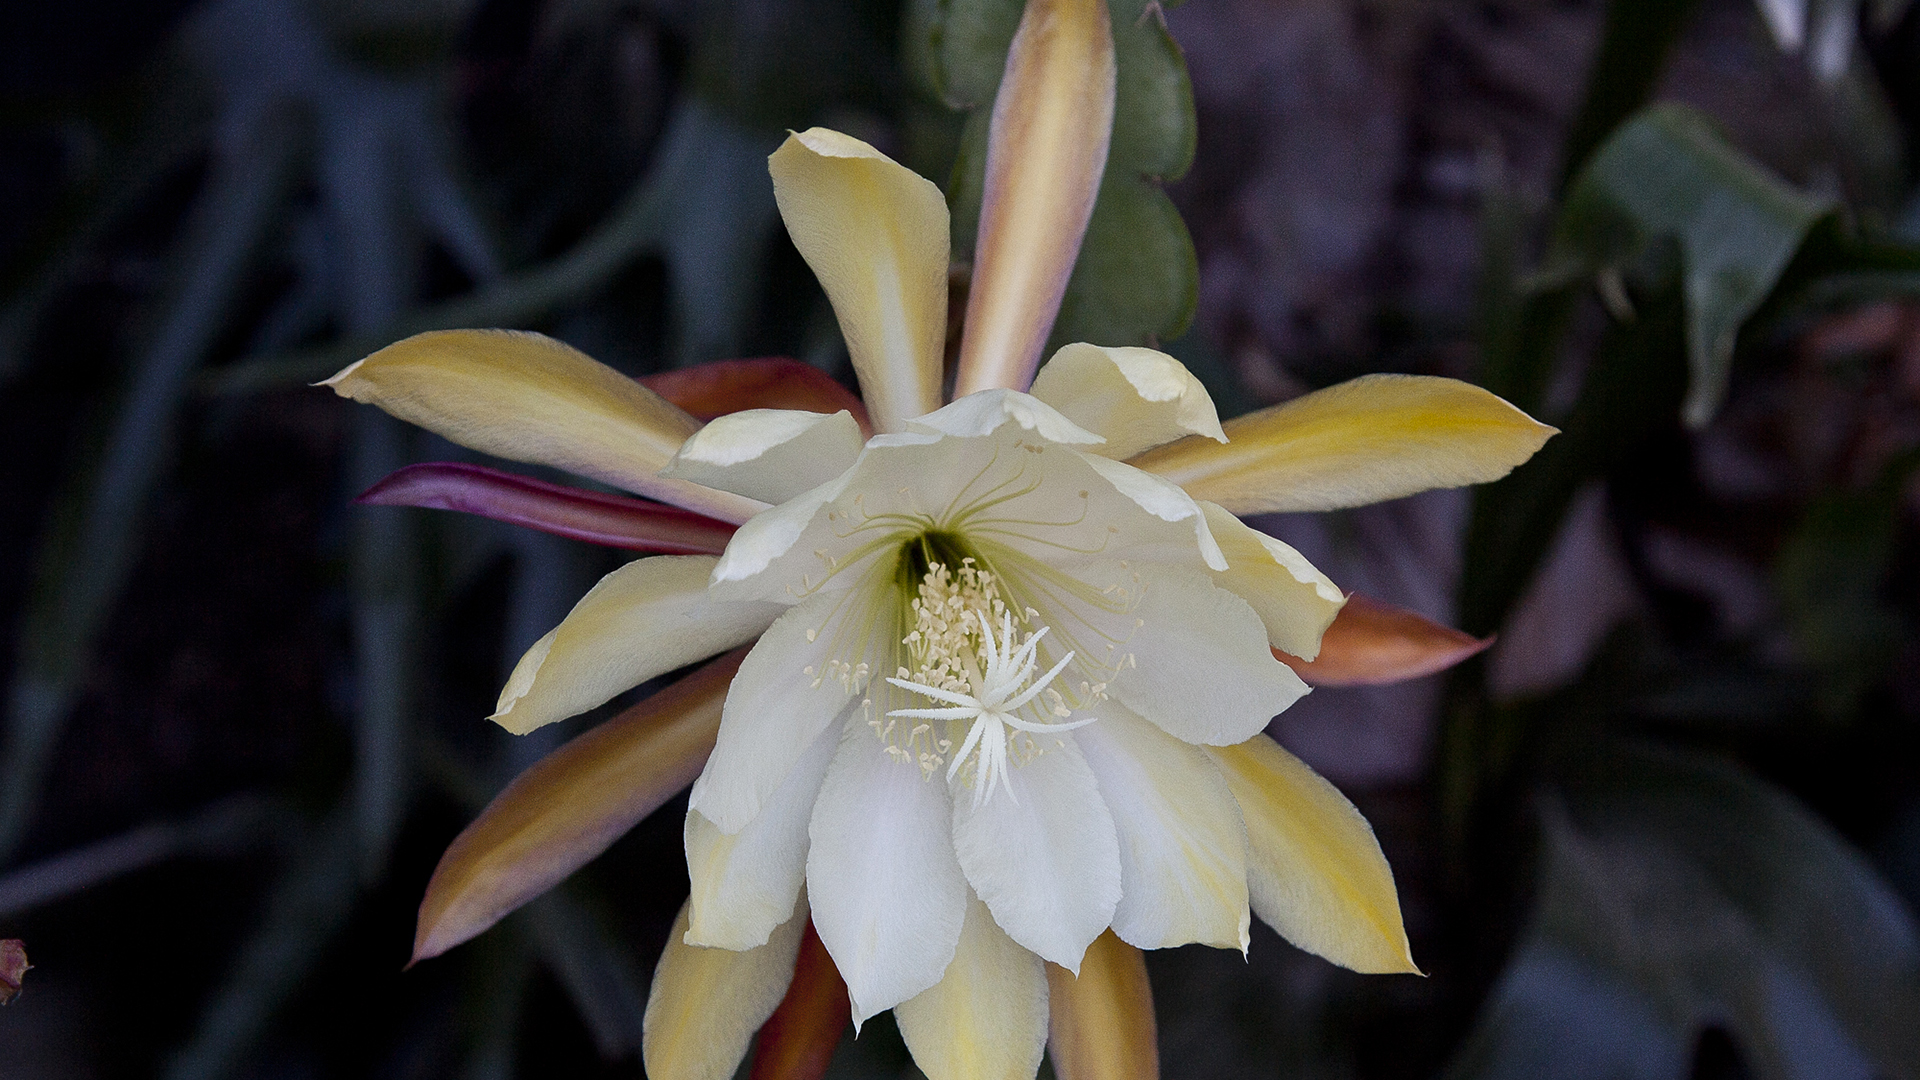 A multi-colored close shot of an epiphyllum.